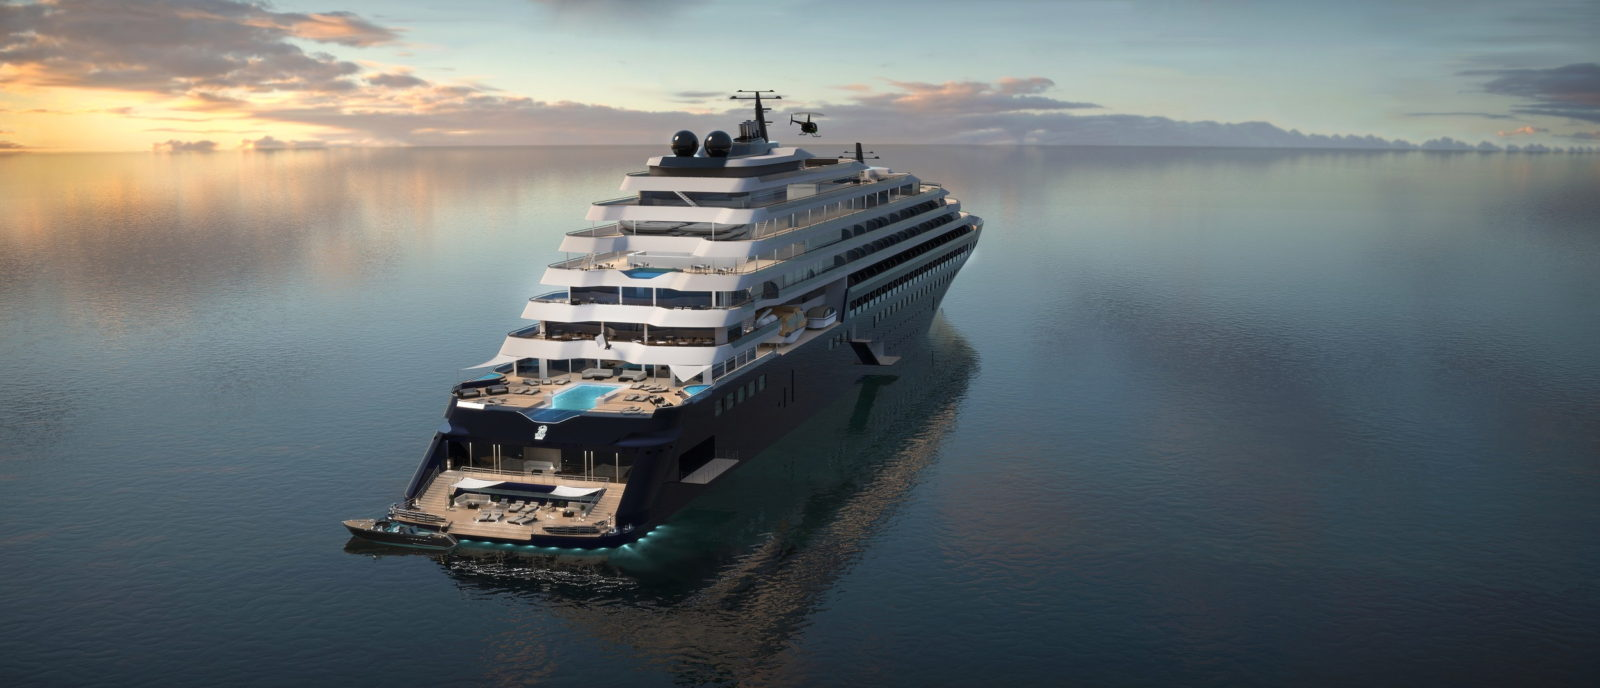 ritz-carlton's-first-superyacht-awaits,-with-your-own-concierge-and-the-best-of-everything